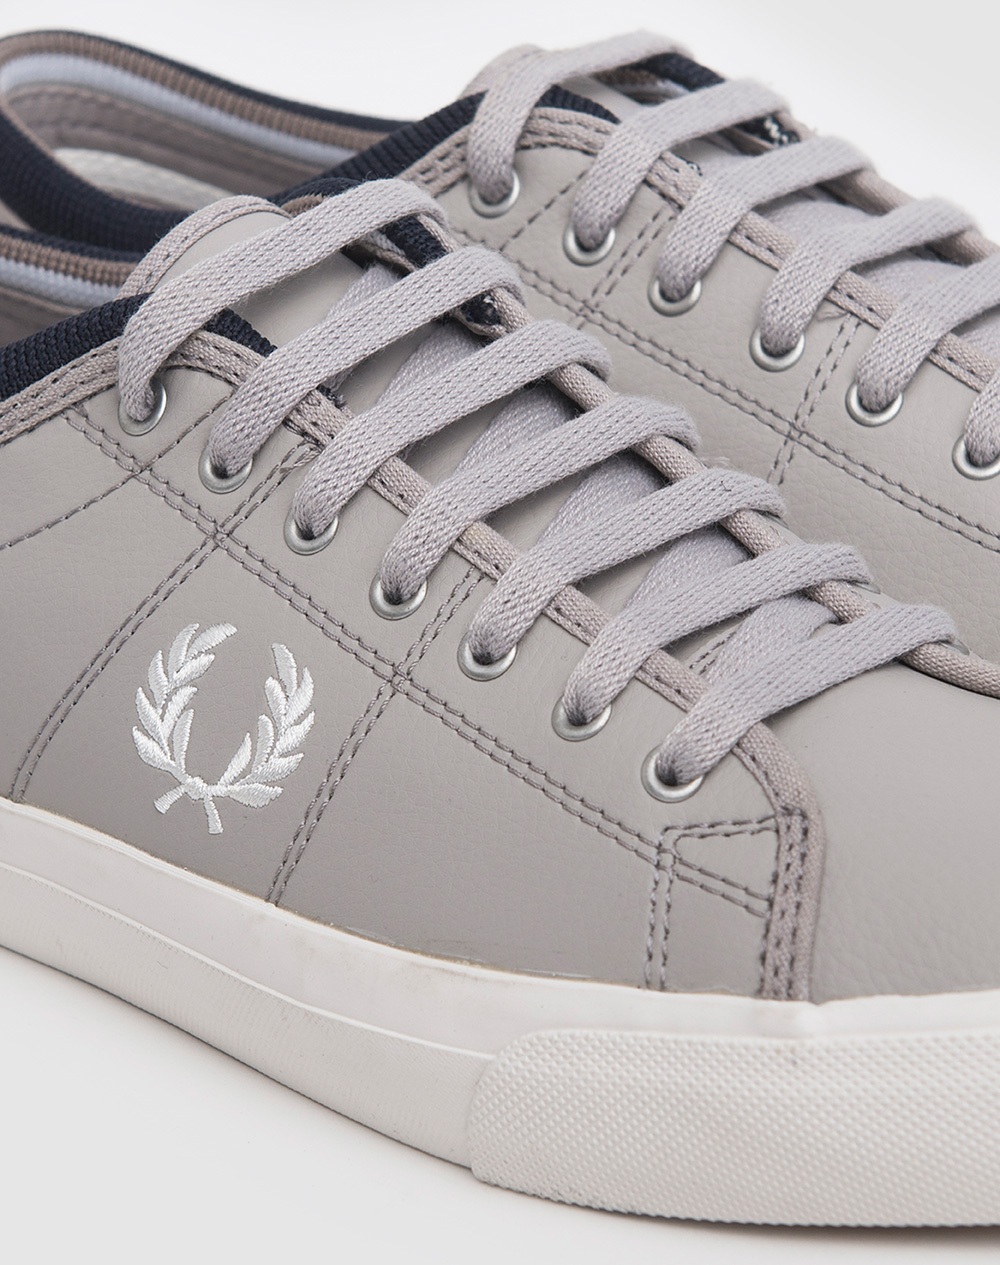 Zapatillas Fred Perry modelo Kendrick Reverses Tipped Cuff Canvas en color gris para hombre-d